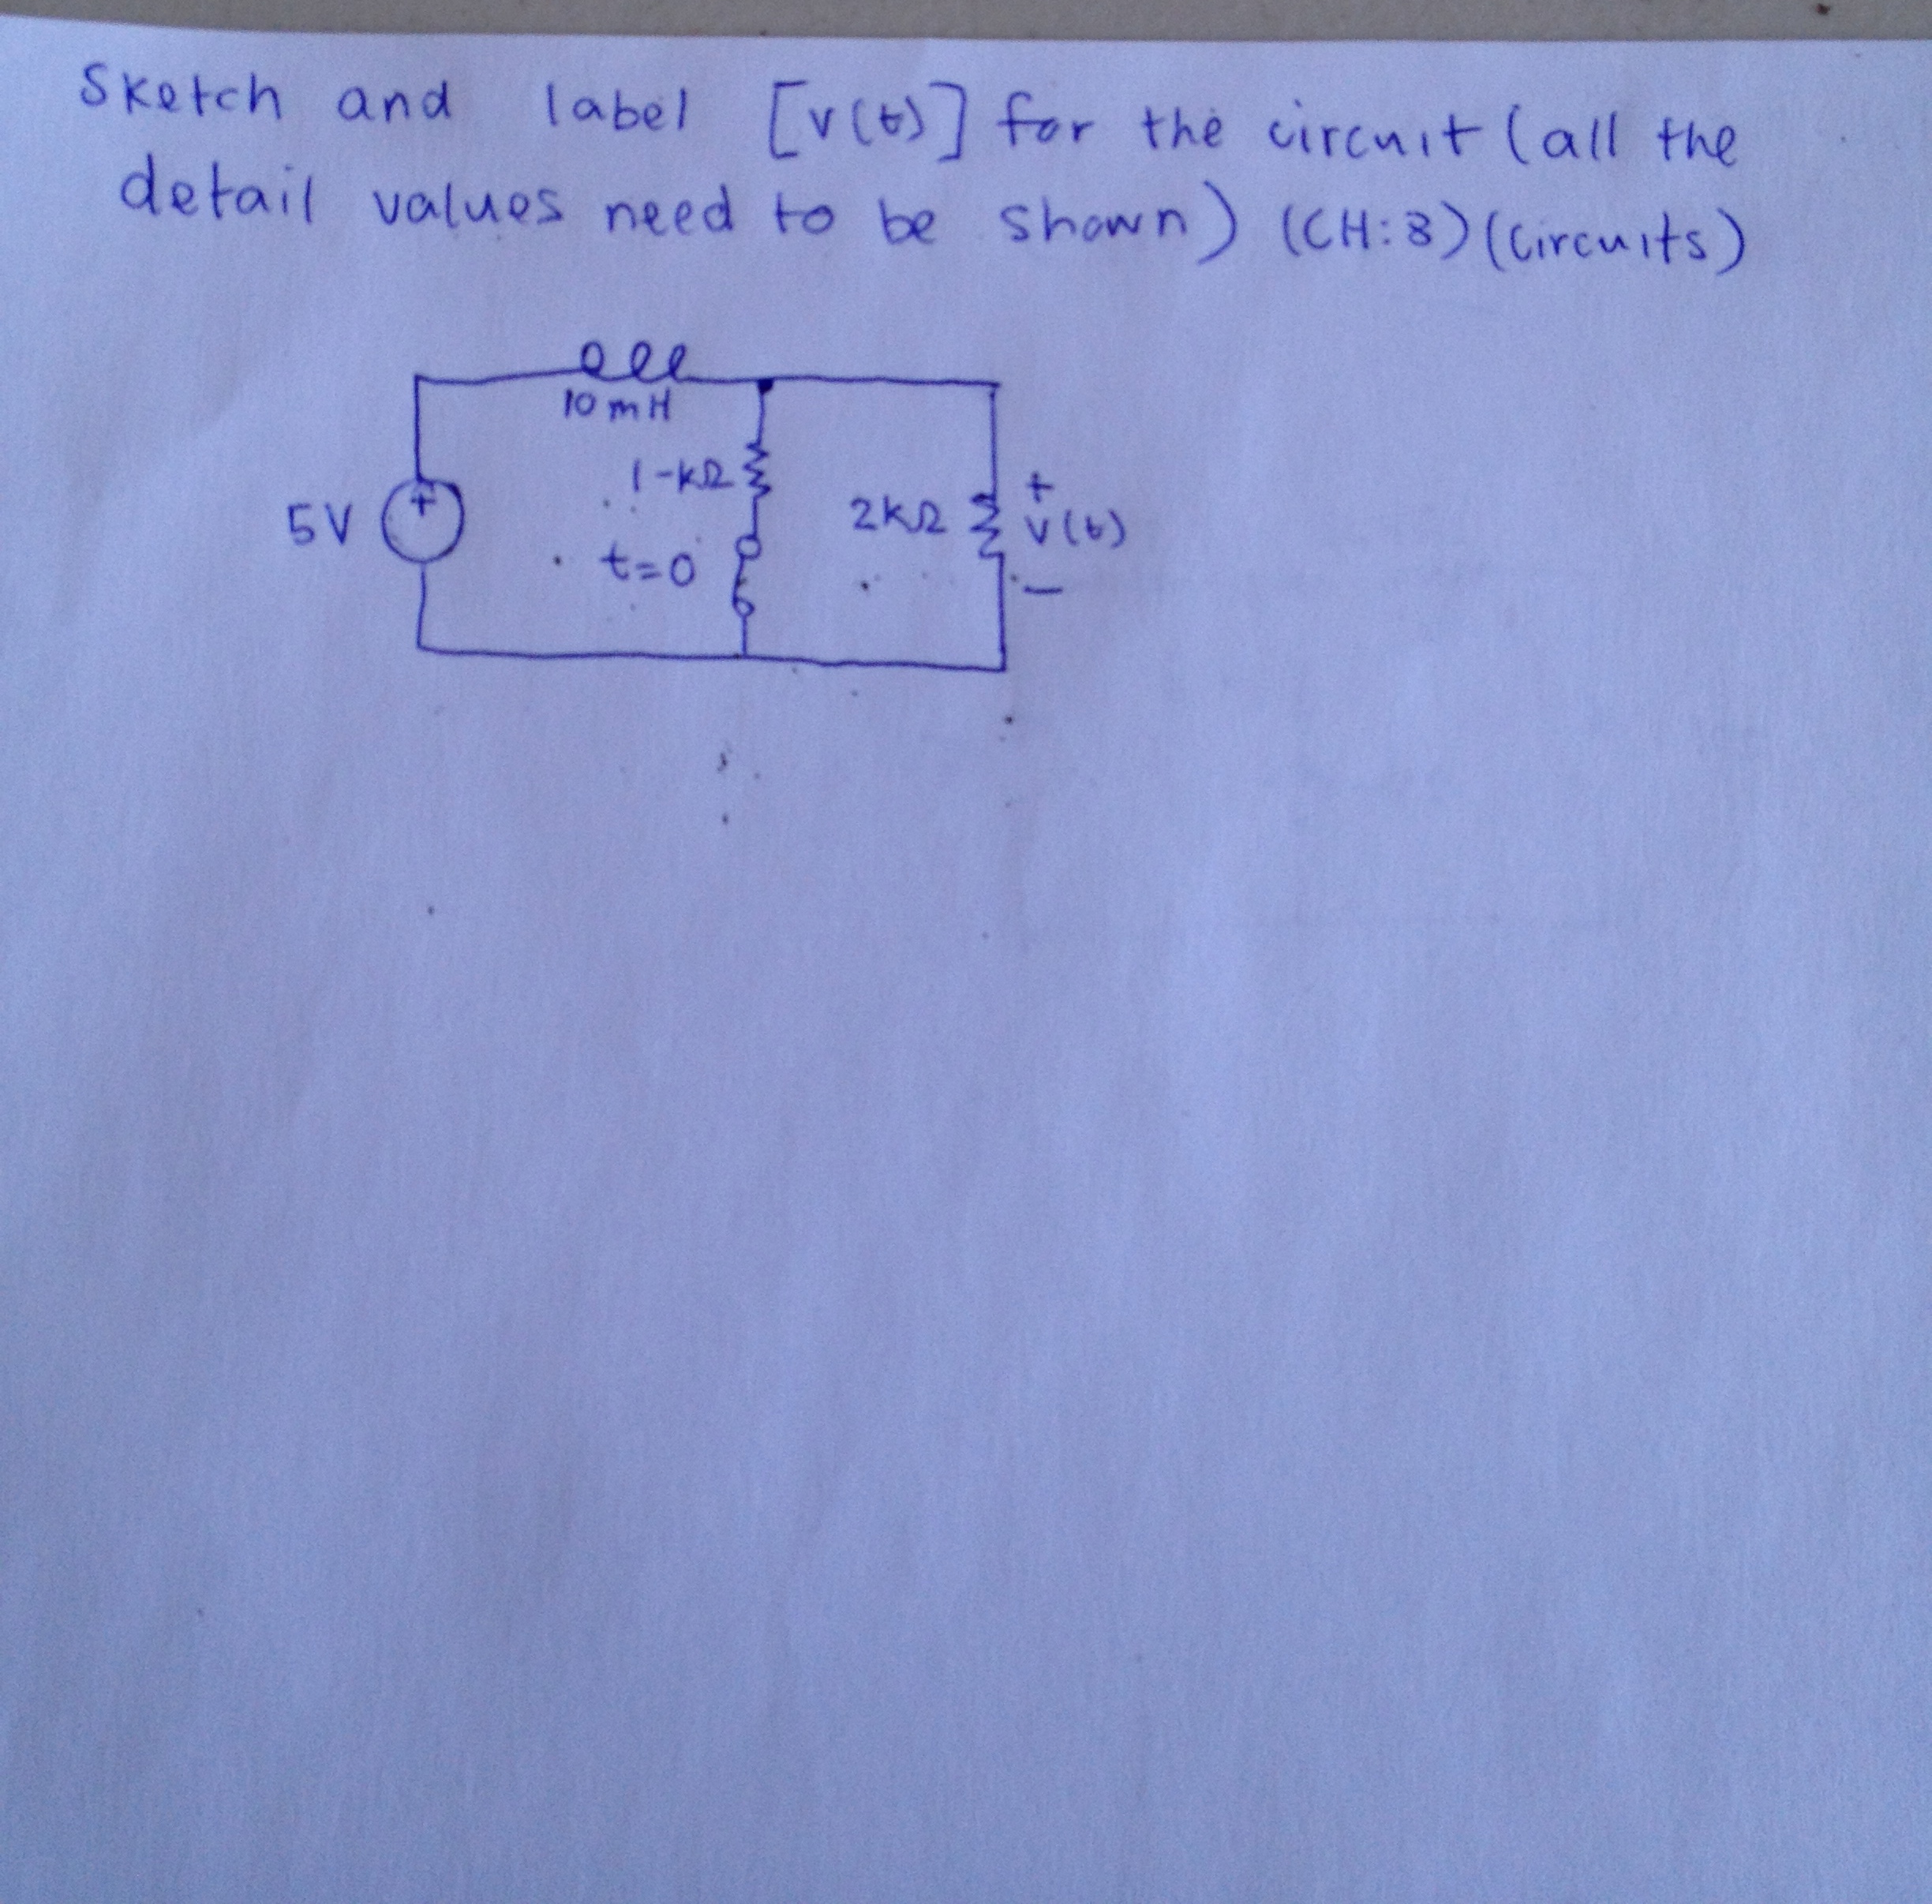 Sketch and label [(v(t)] for the circuit (all the